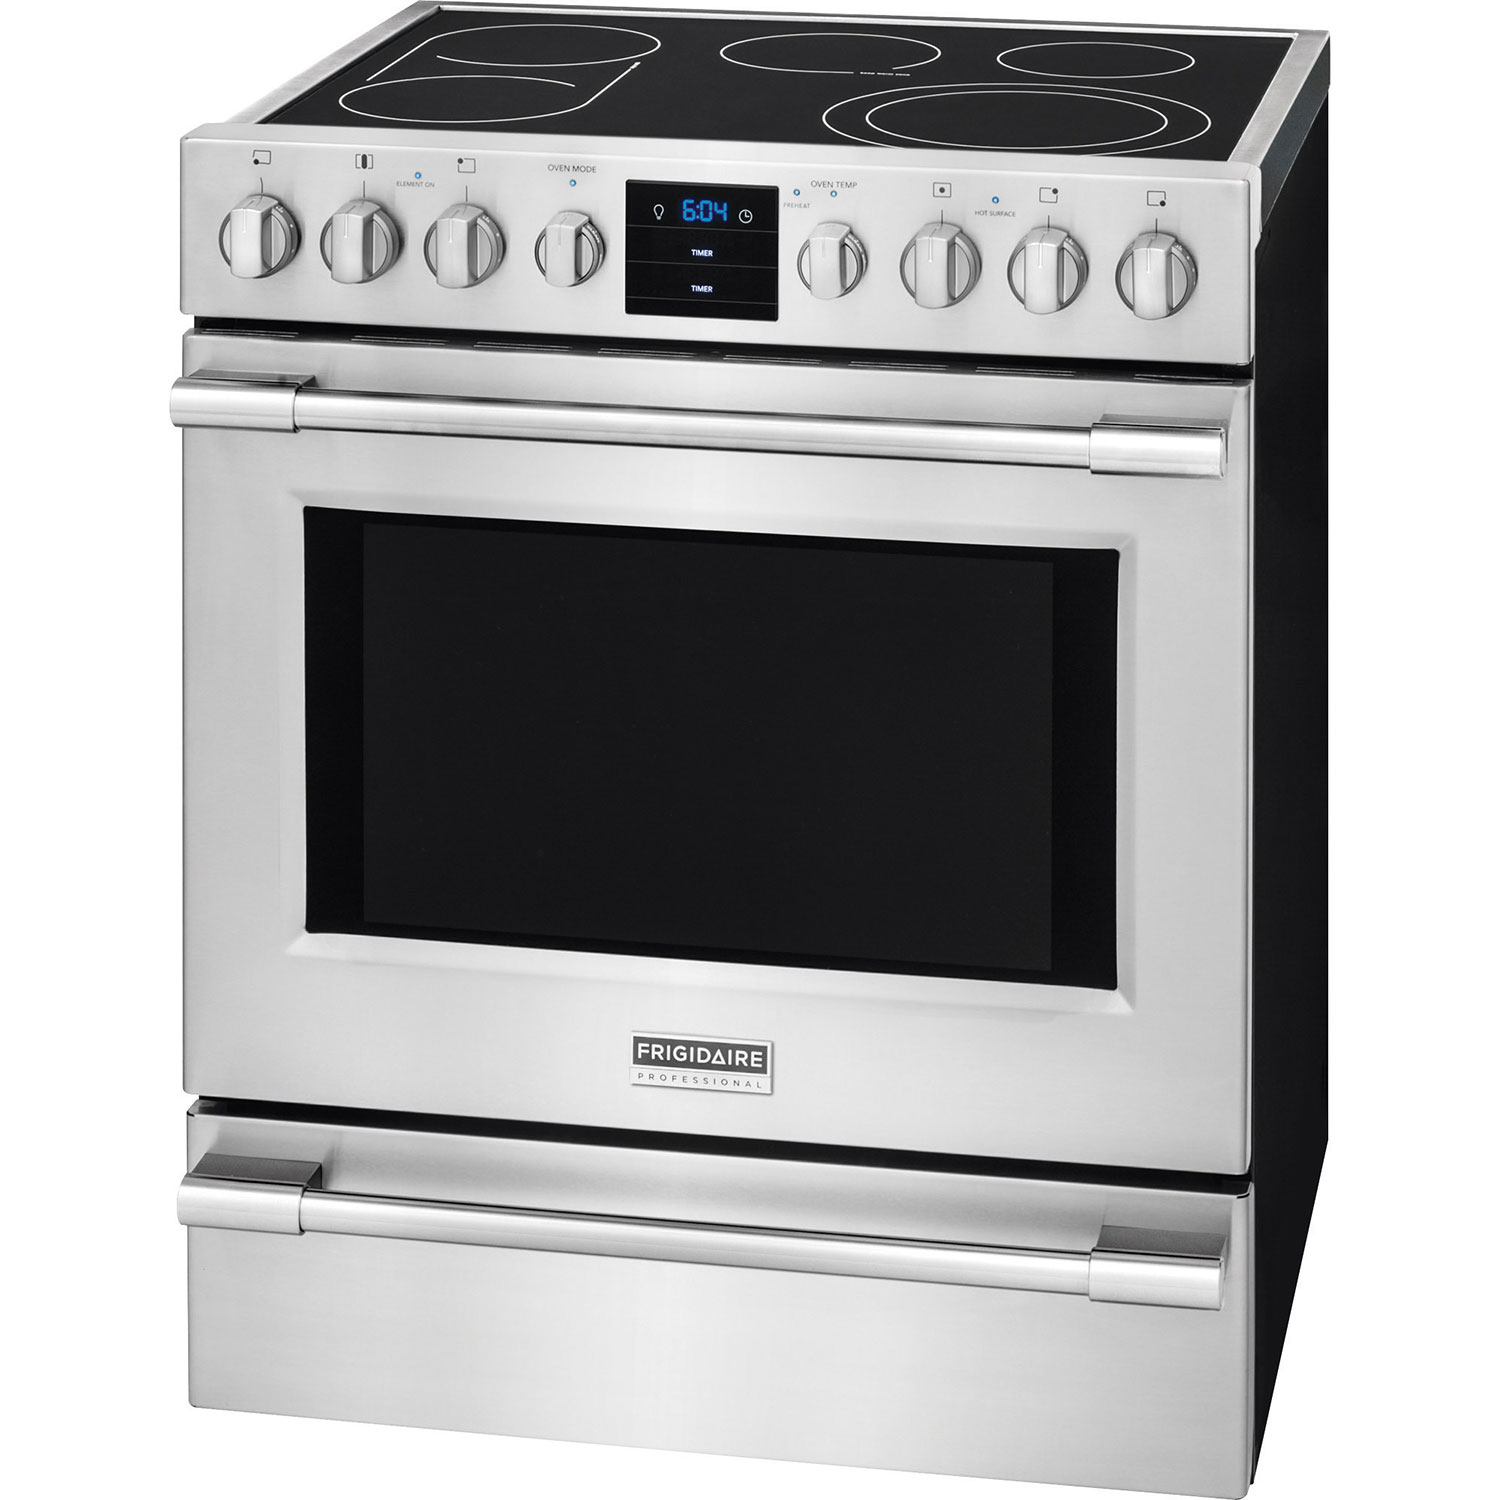 Professional Electric Ranges For The Home Frigidaire Pro 30 51 Cu Ft Self Clean Convection Free Standing